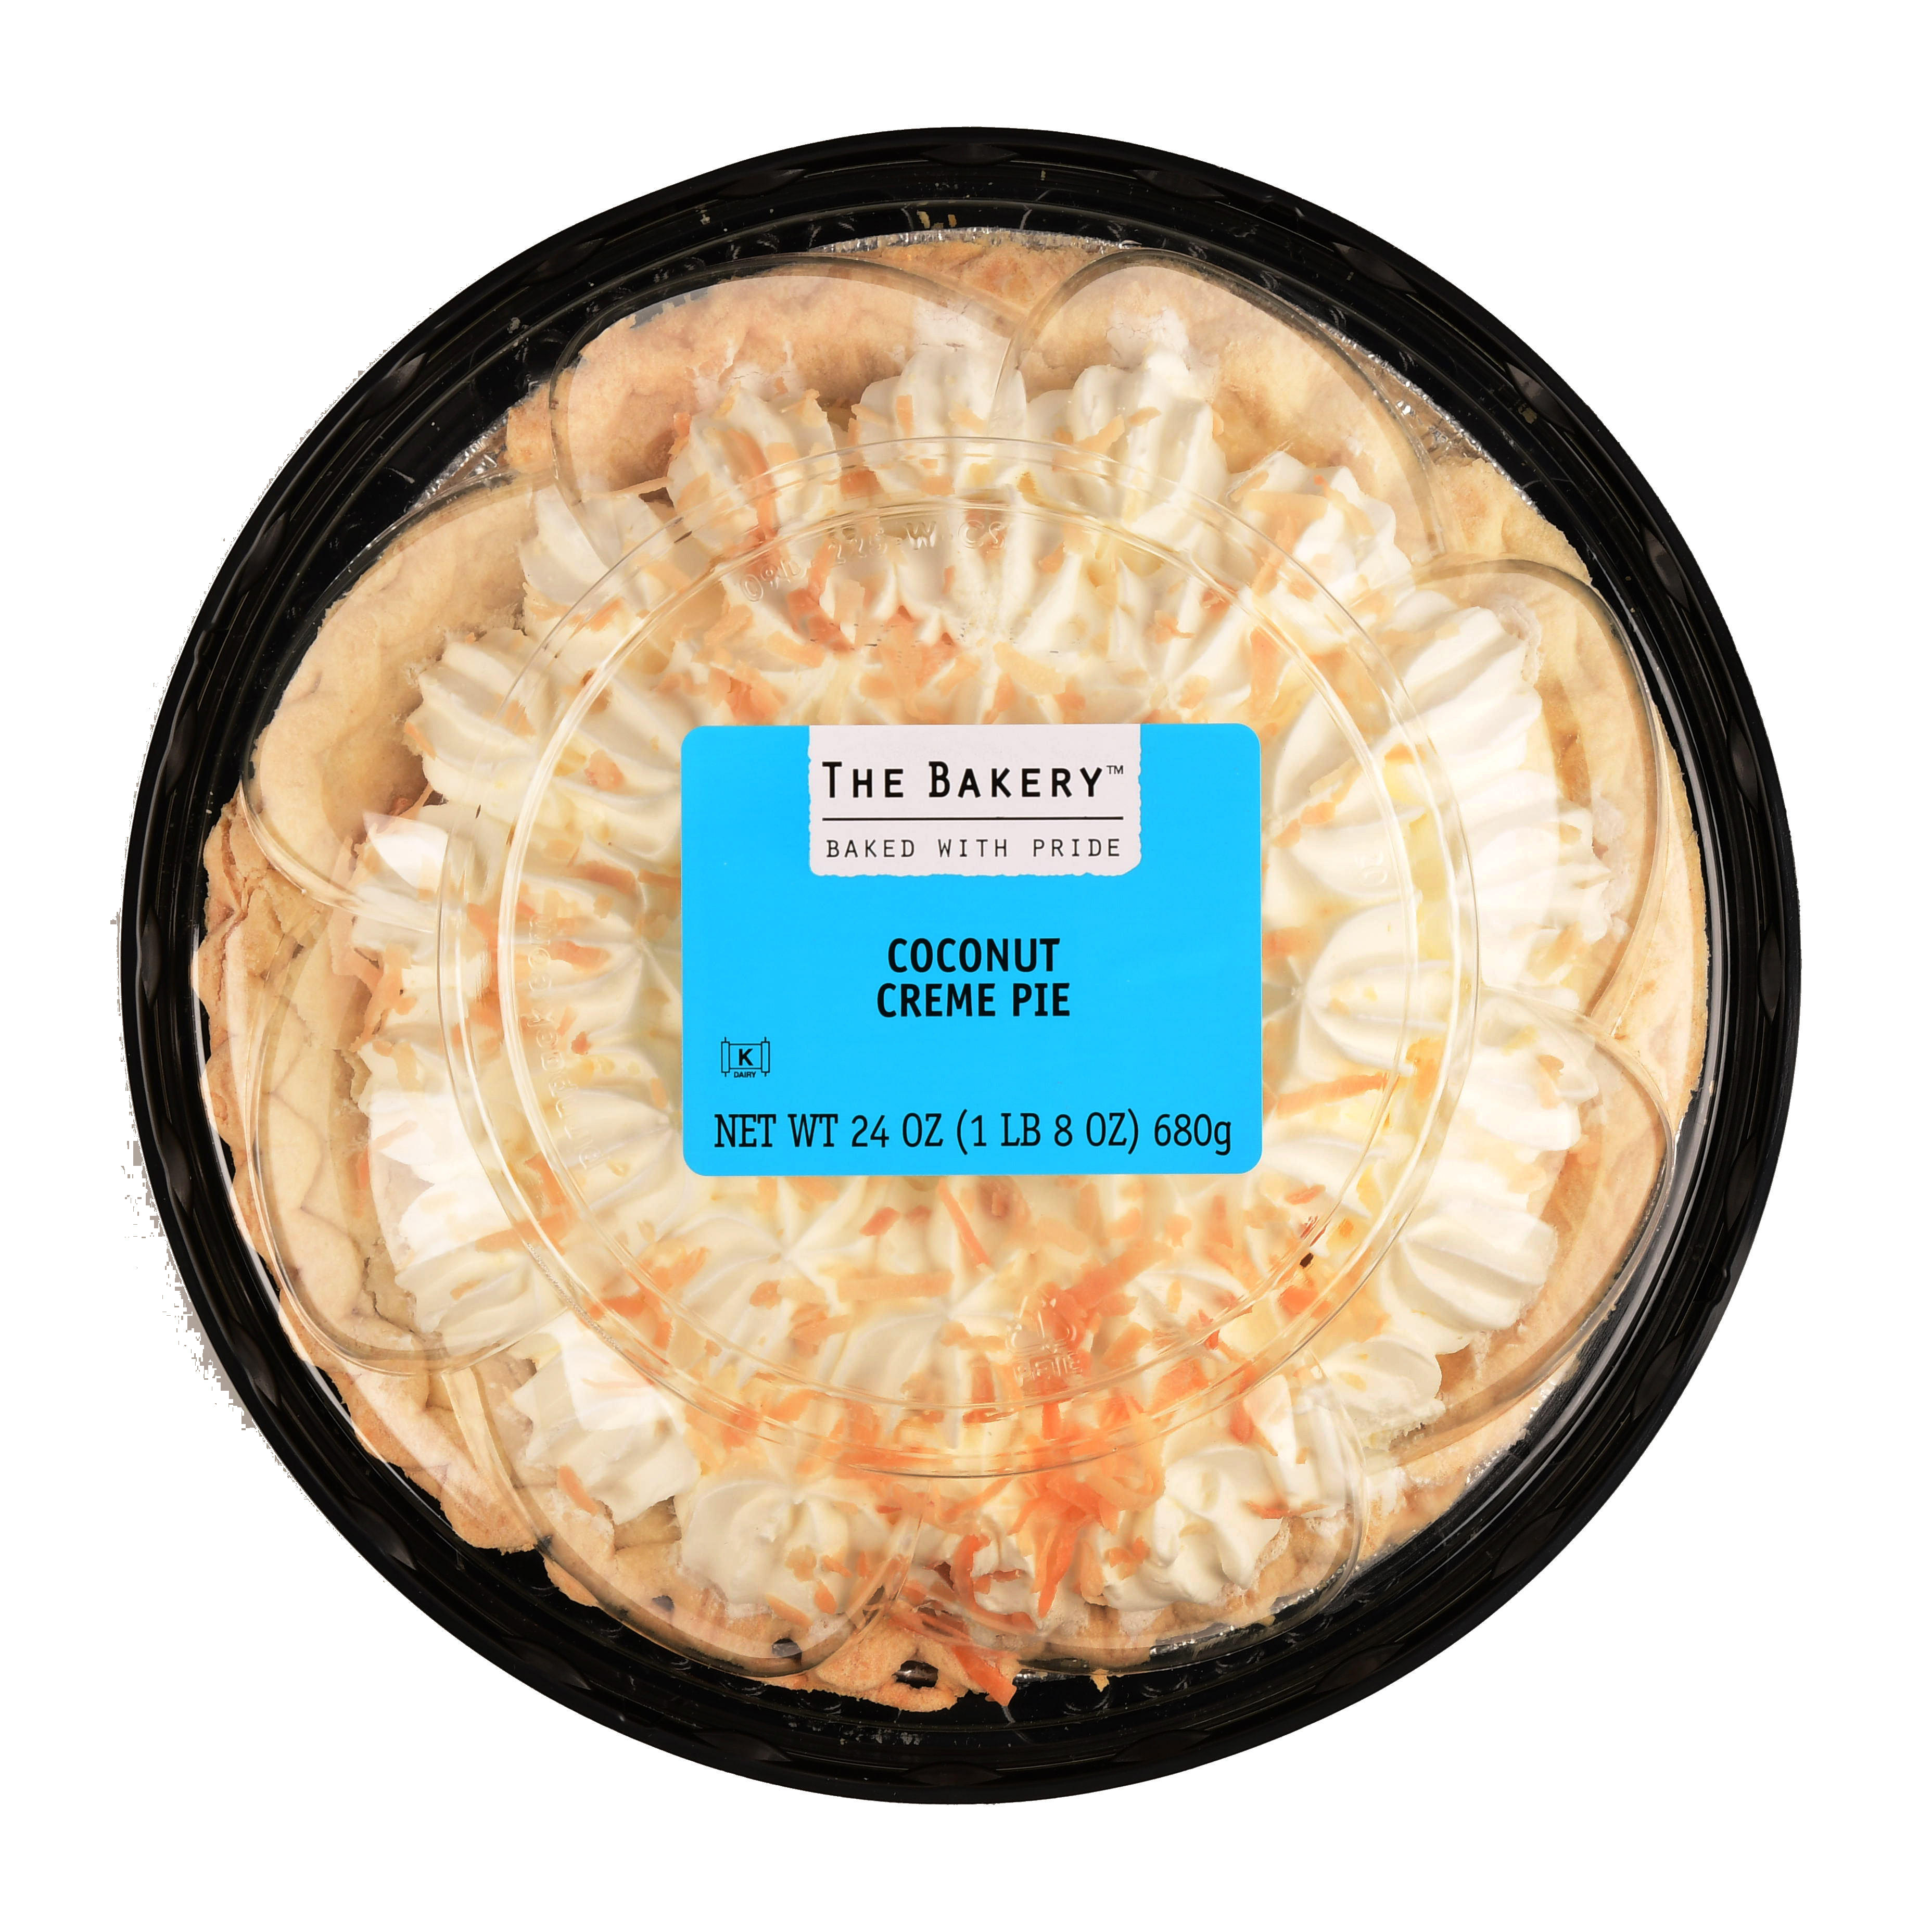 The Bakery Coconut Creme Pie, 24 oz